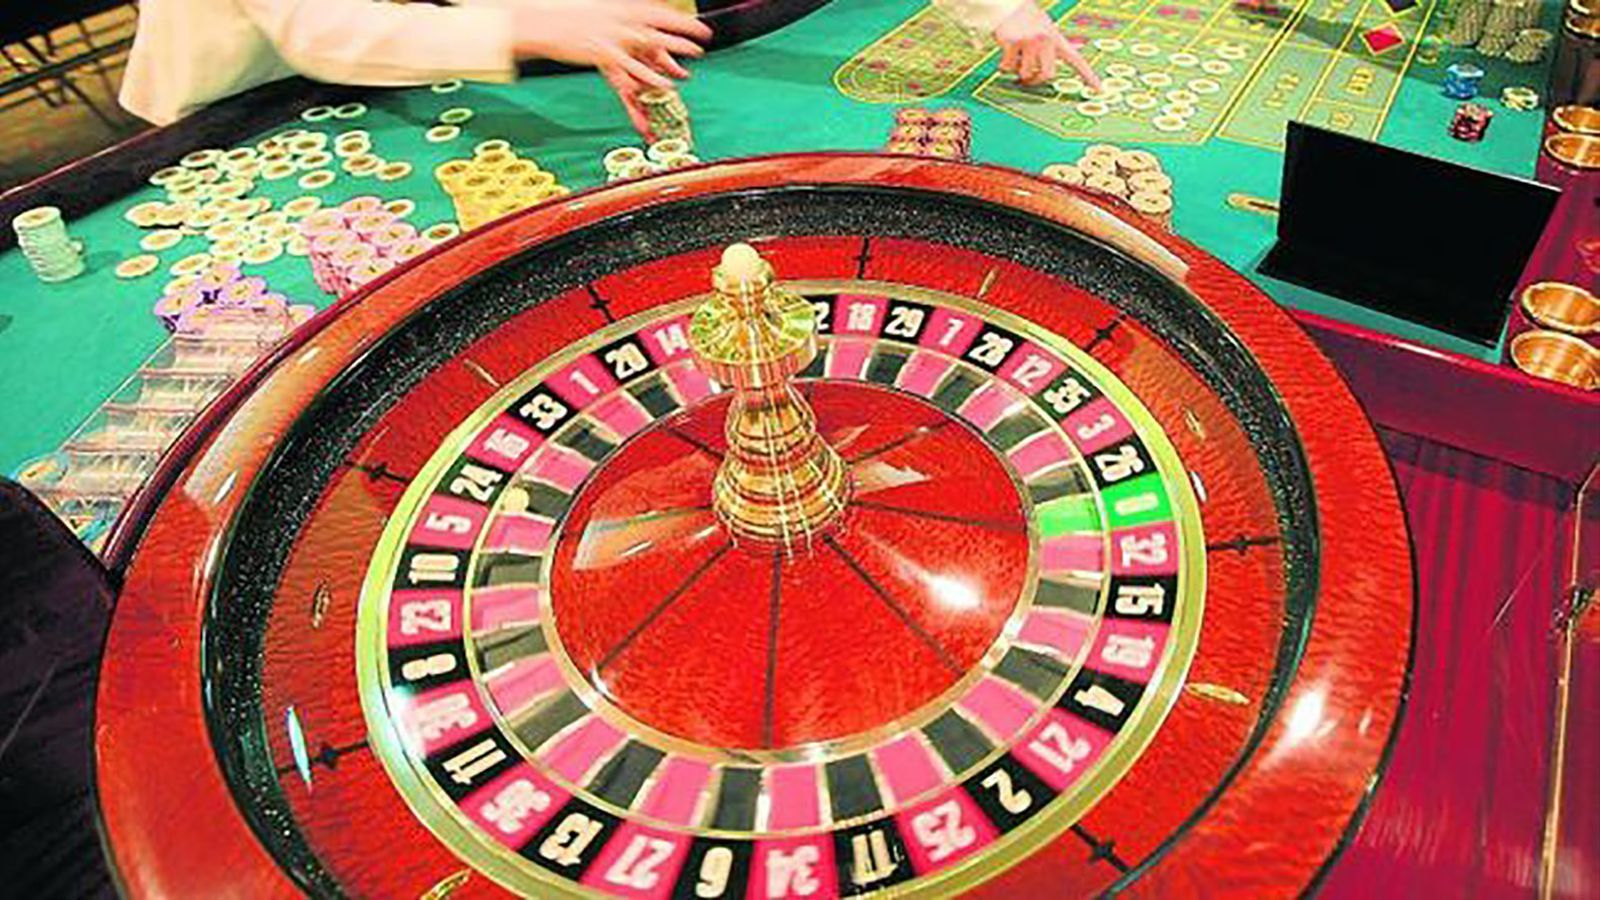 Una ruleta d'un casino. / REUTERS